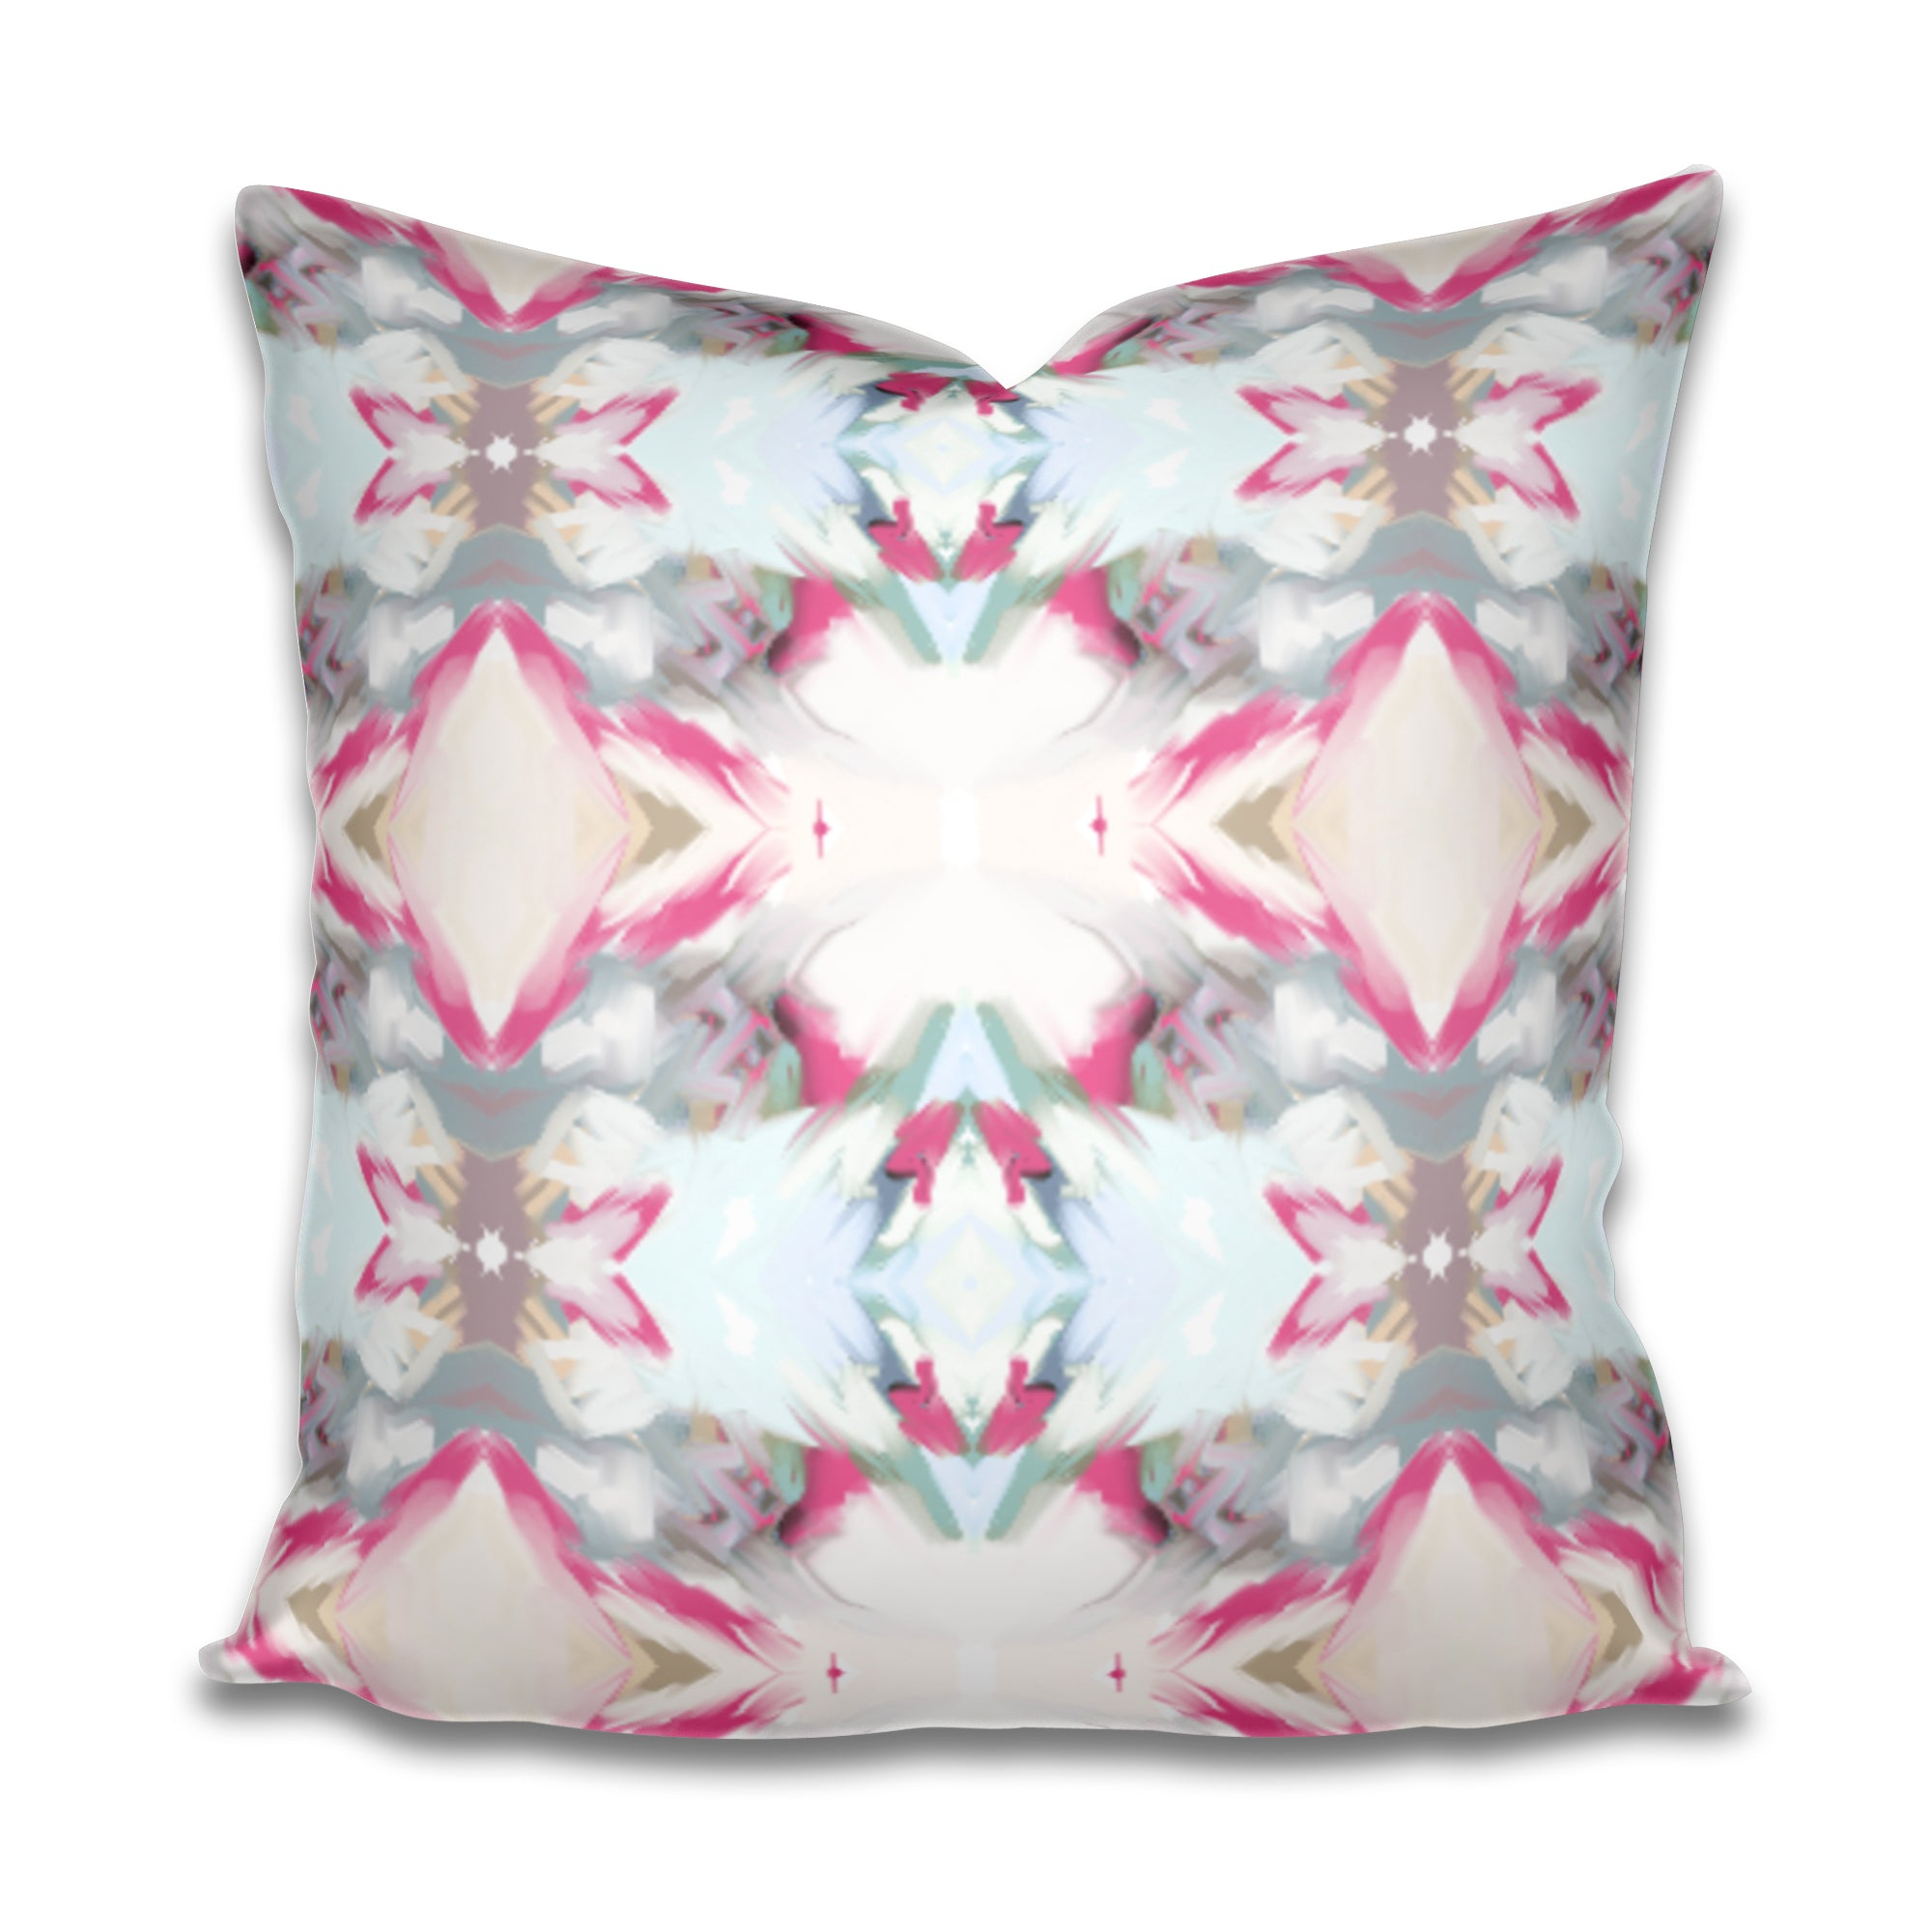 charleston artist, charleston abstract art, charleston interiors, charleston interior designer, painterly pillow, hand painted design pillow, pink blue aqua gray pillow